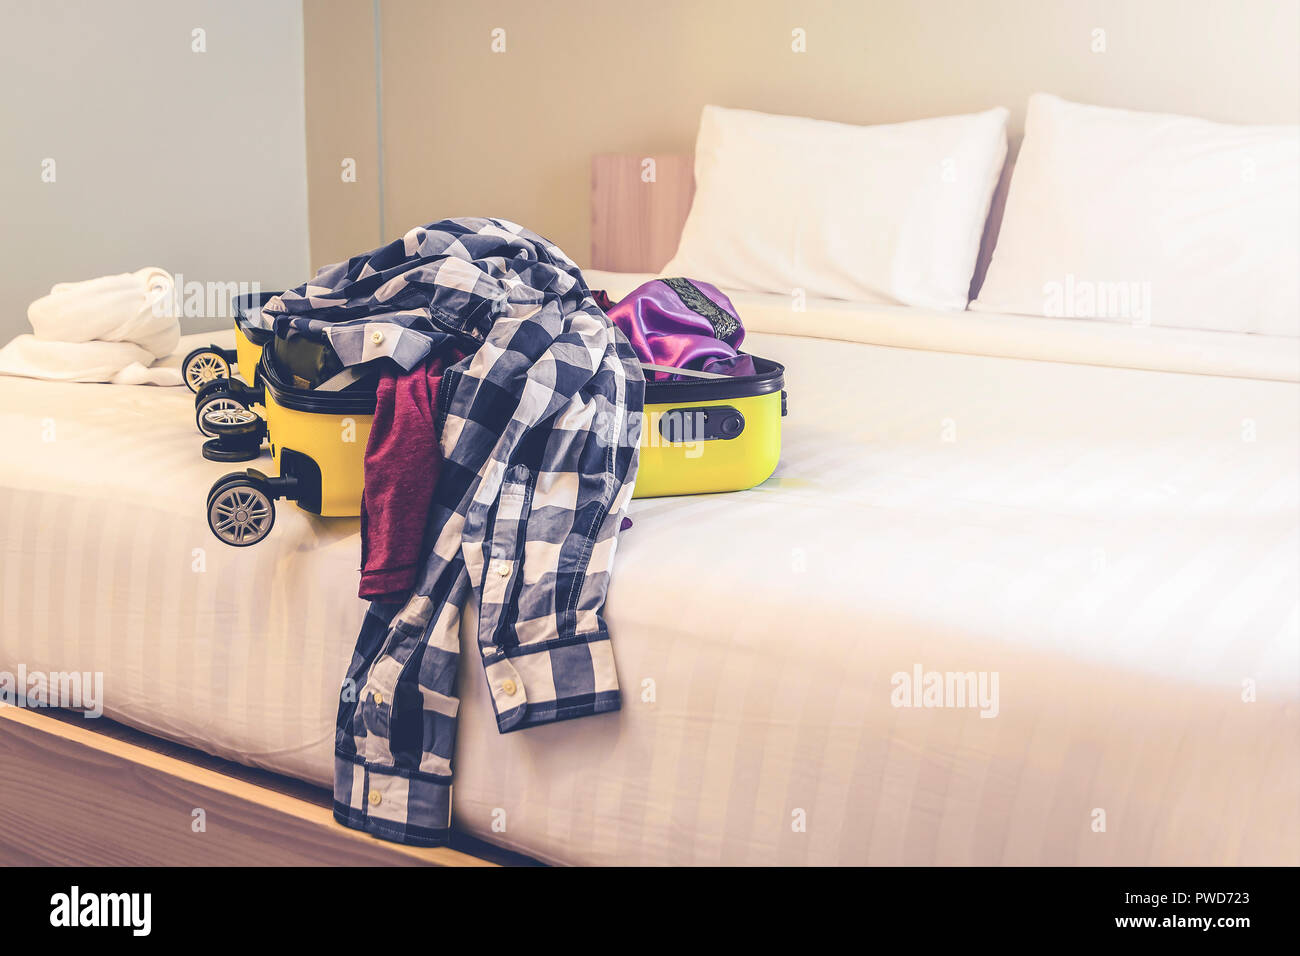 Open travel suitcase with clothes and accessories on bed - Stock Image